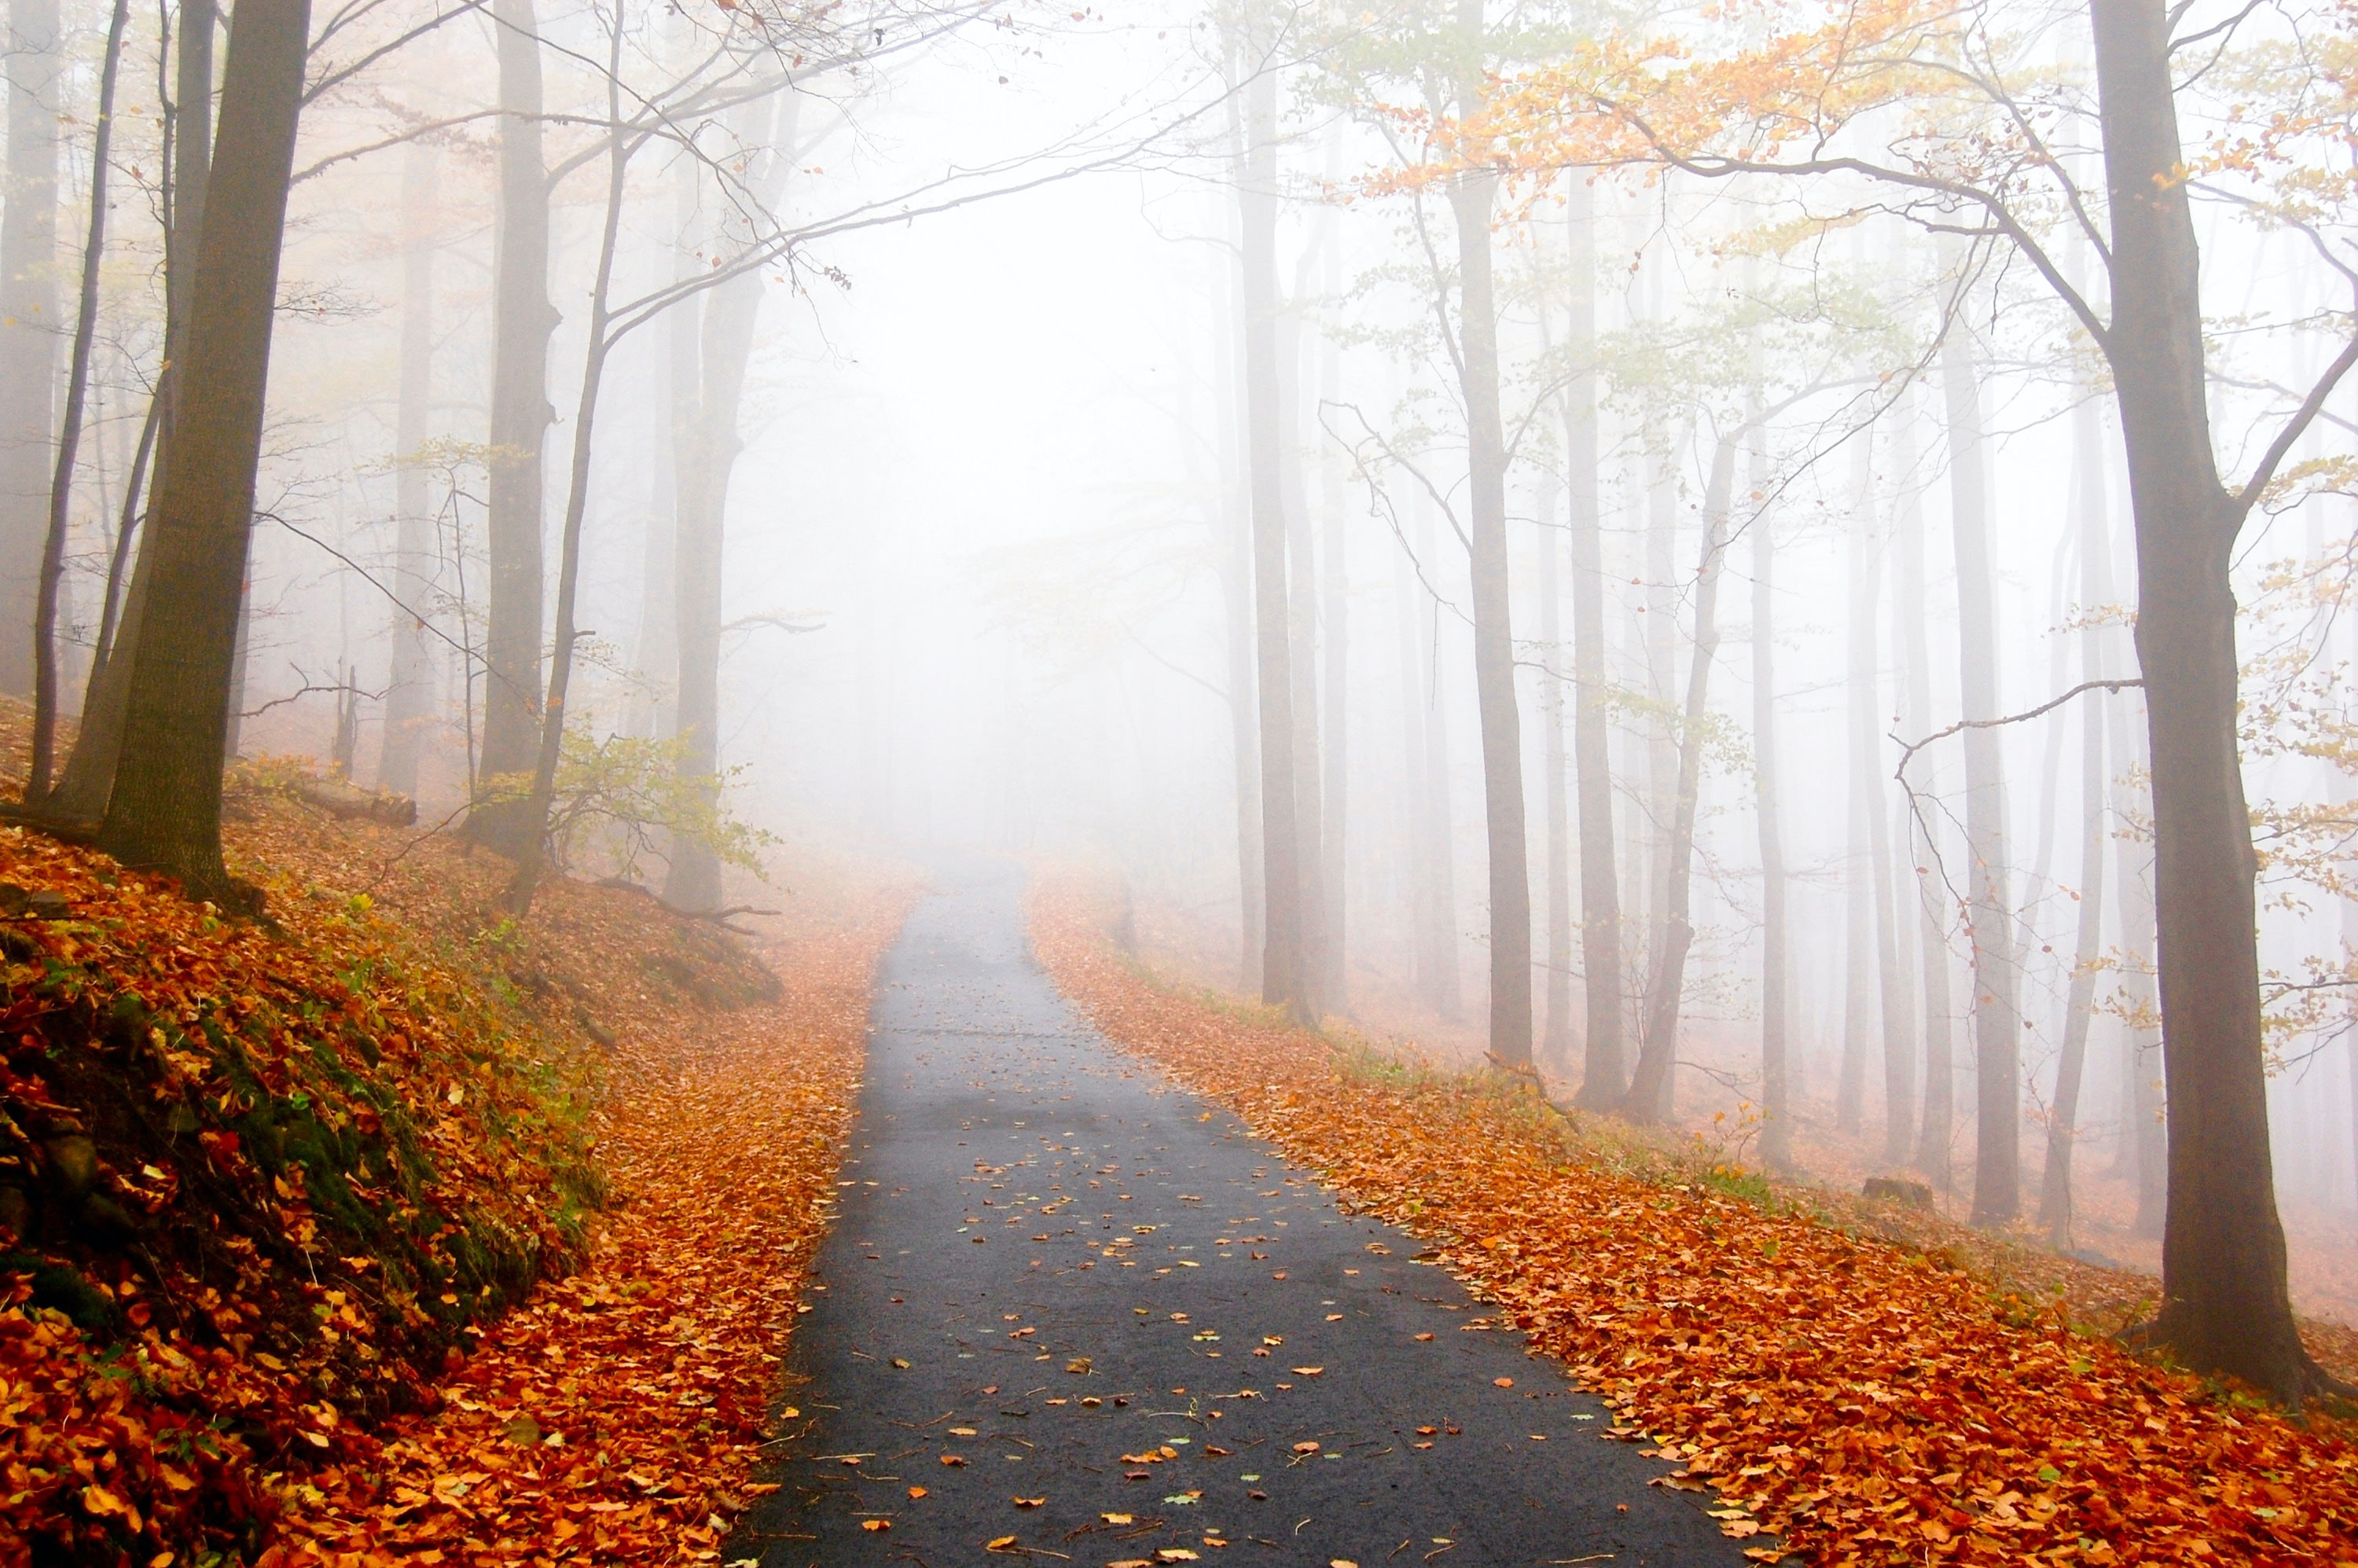 A foggy, mountain road full of fall foliage and red and orange leaves on the trees and ground